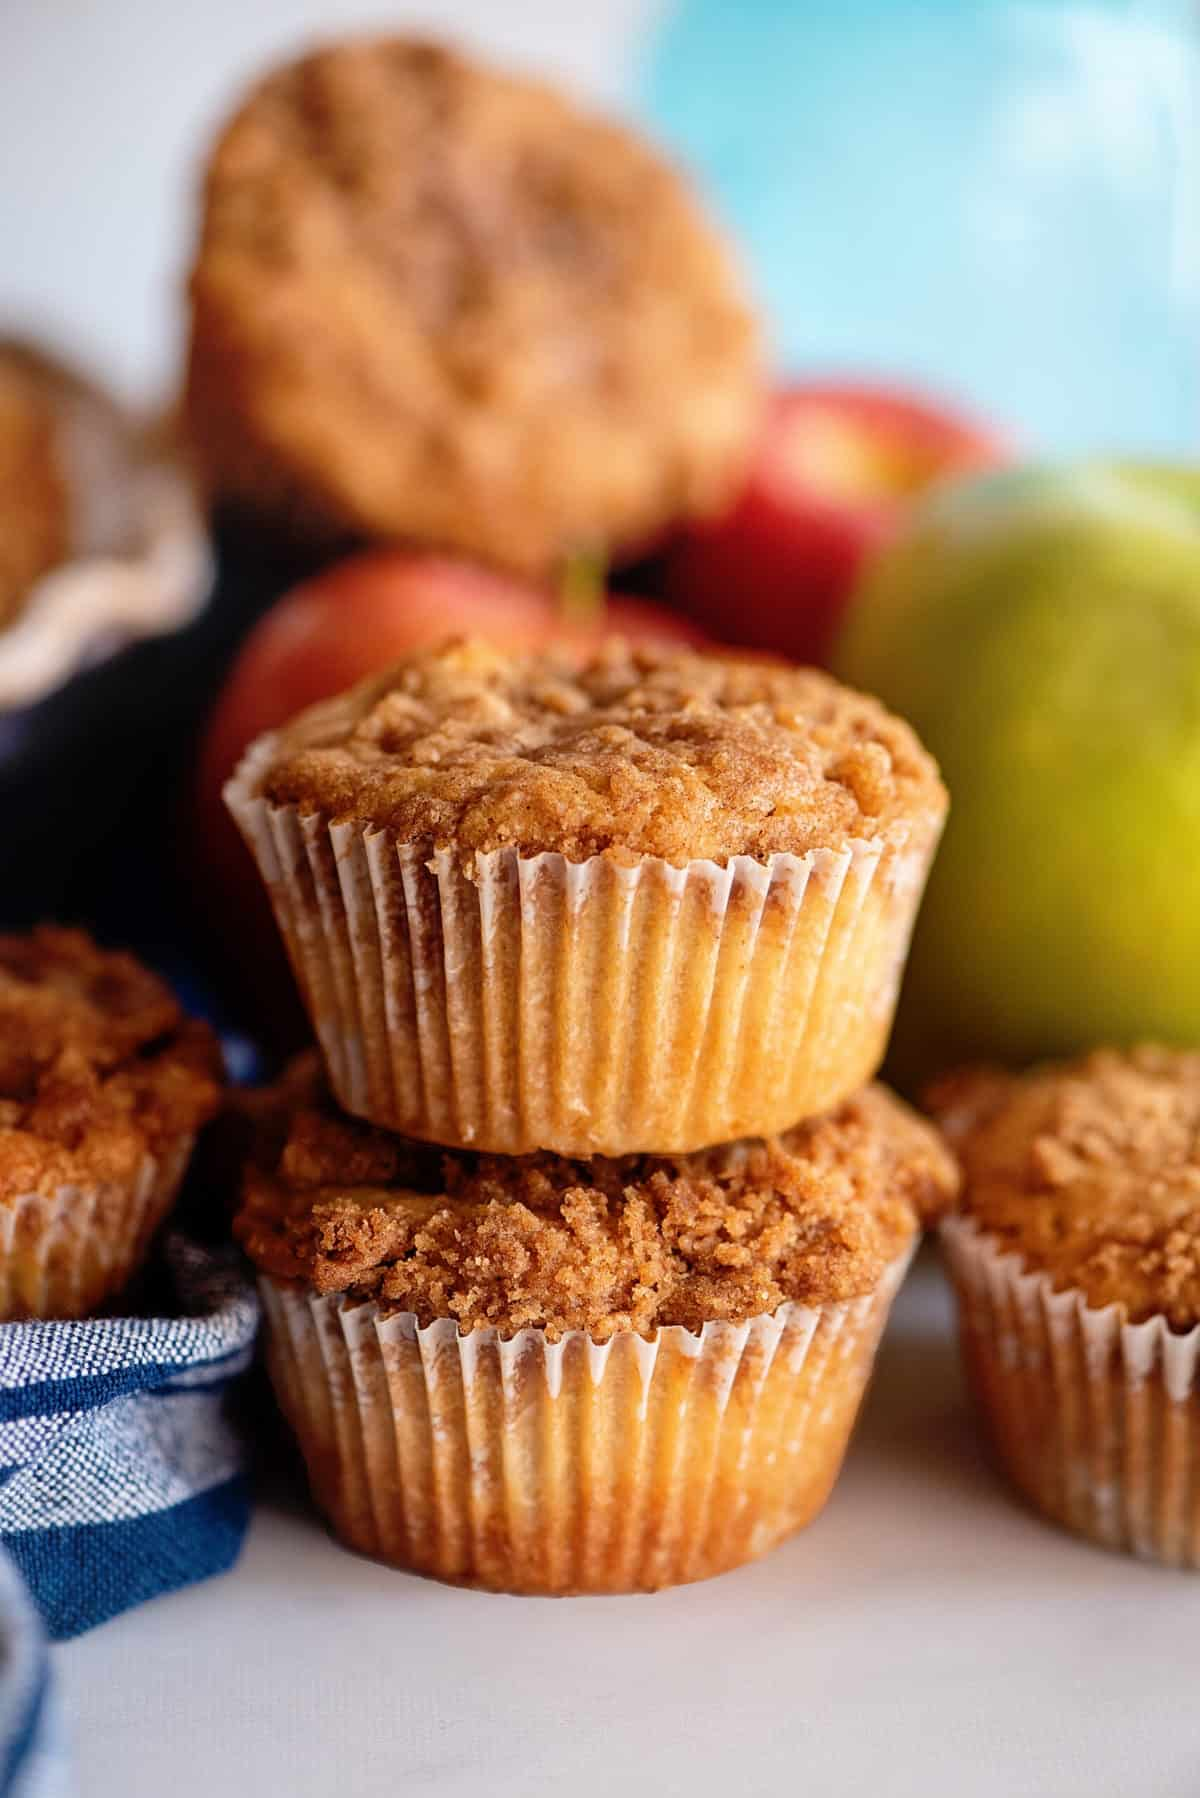 Stack of two apple pie muffins